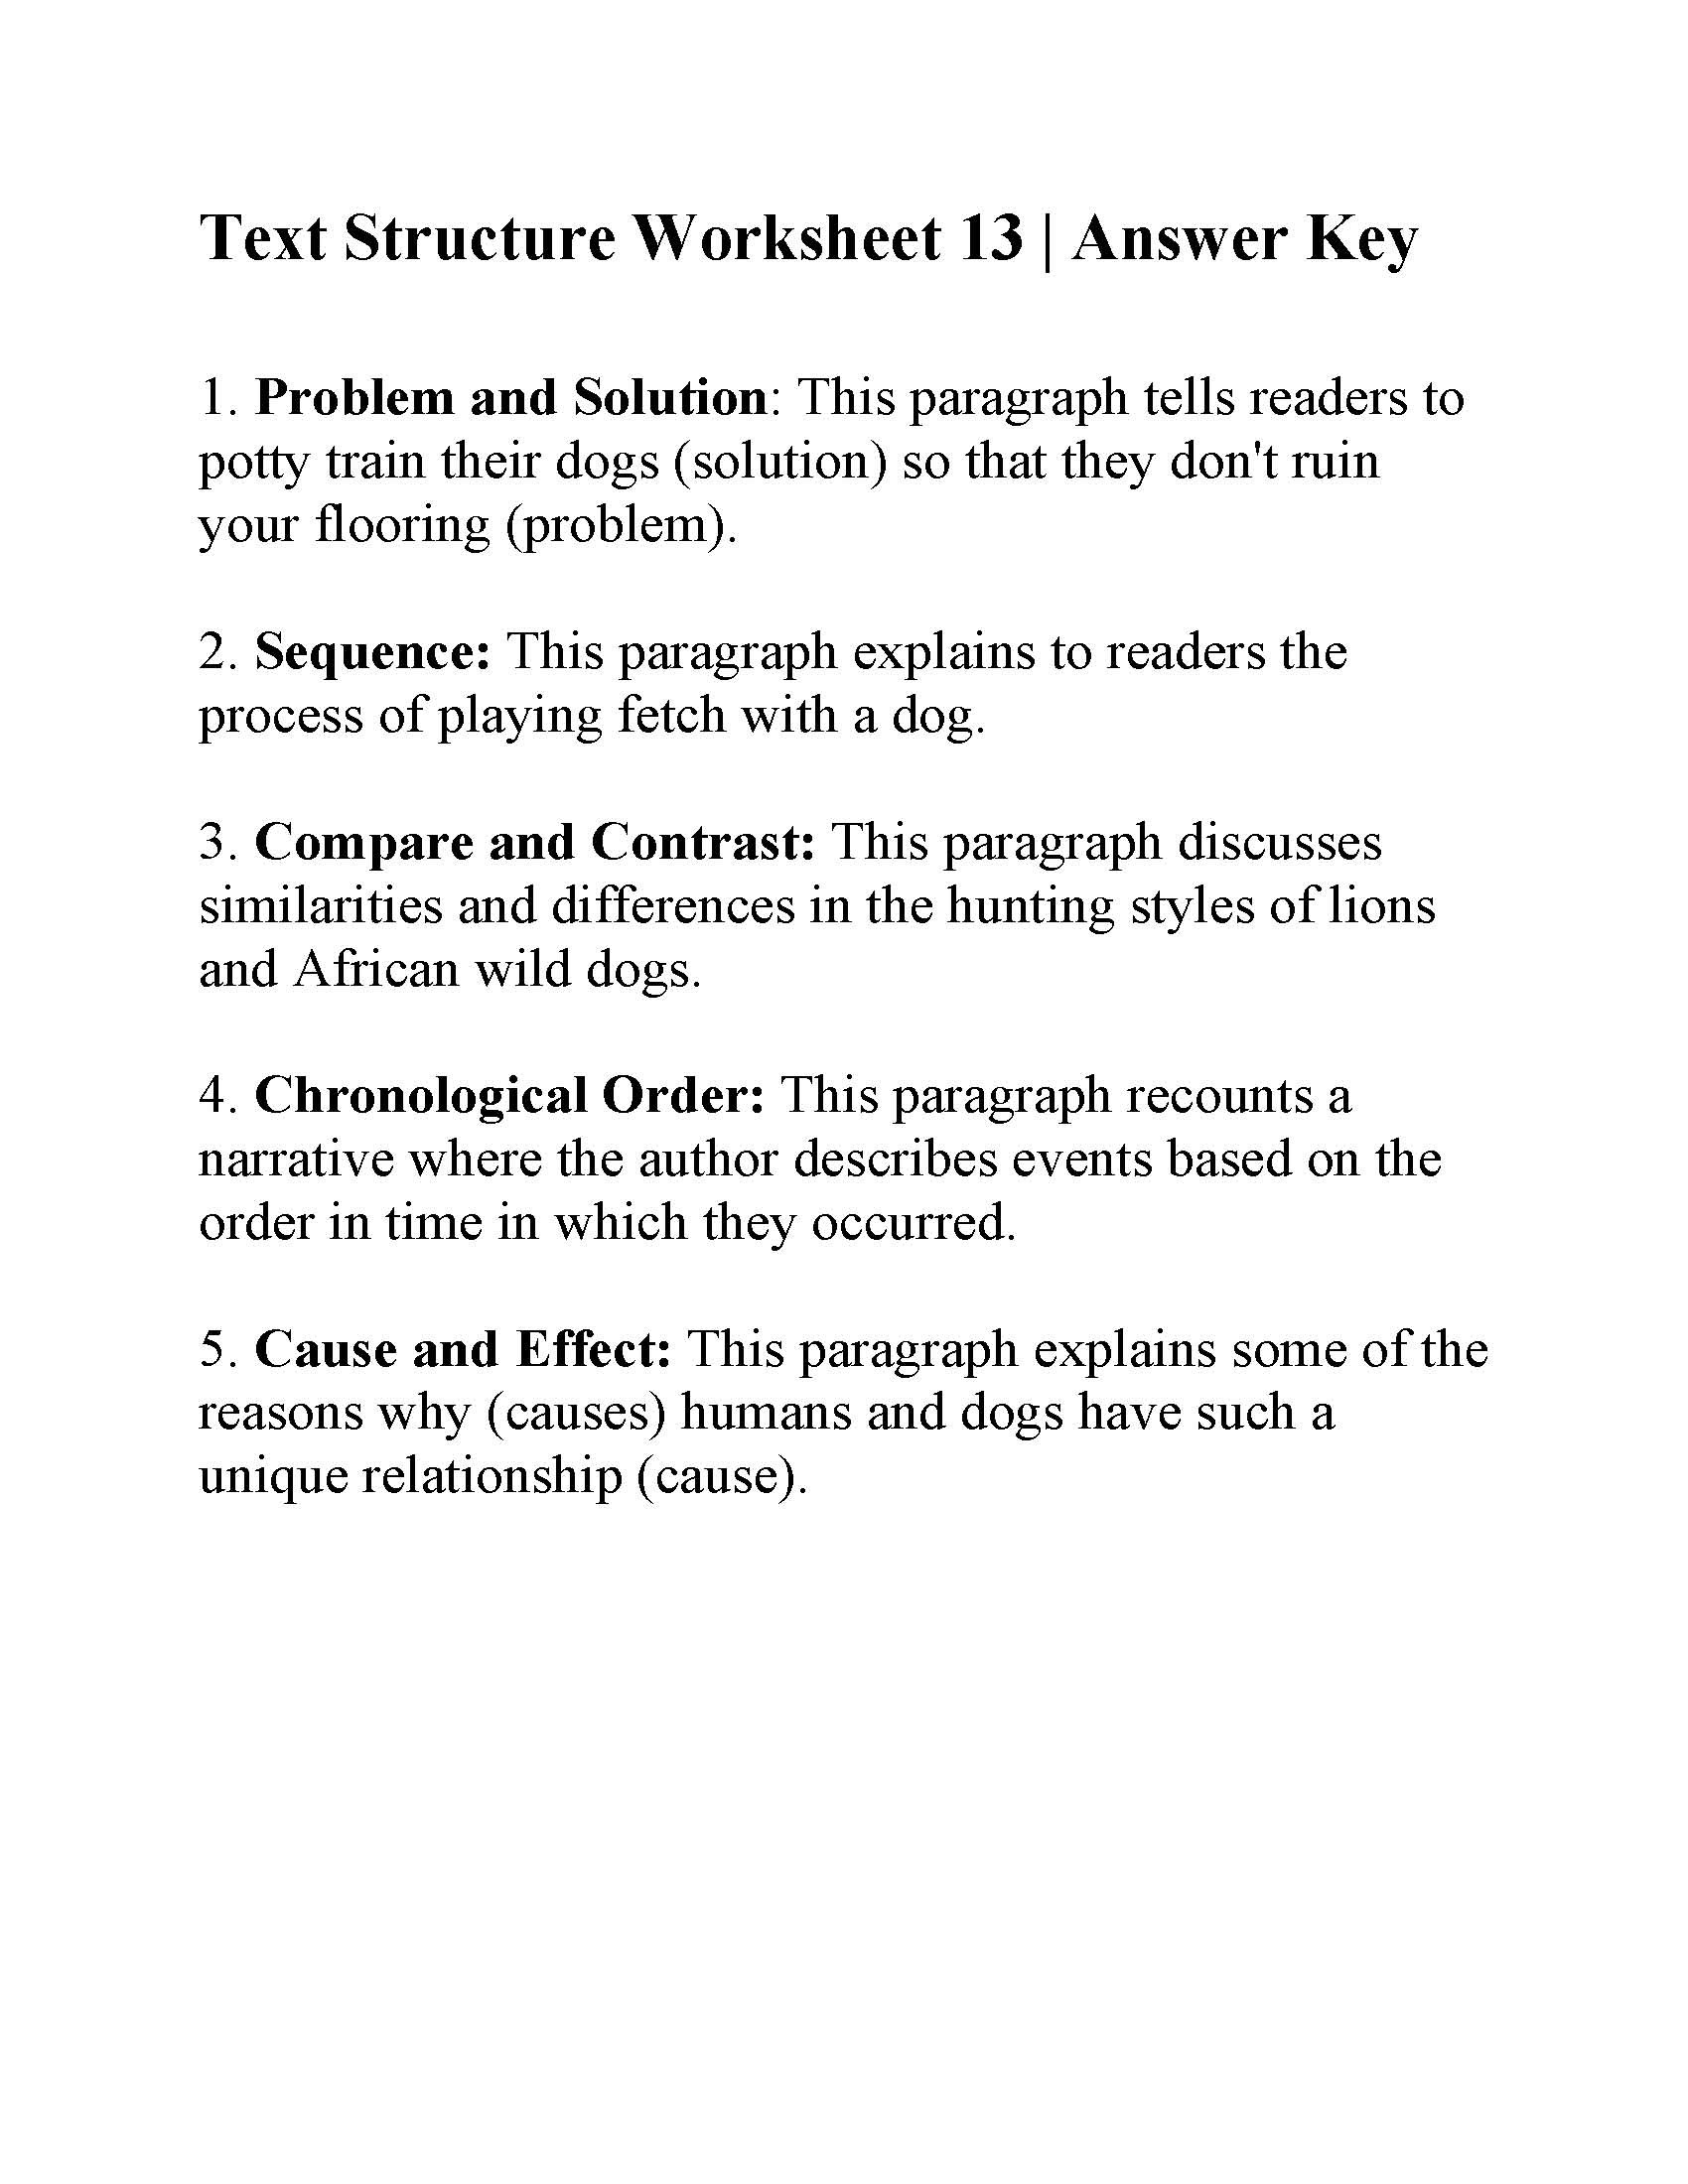 Text Structure Worksheets 4th Grade Text Structure Worksheet Answers Worksheets Matematik Games